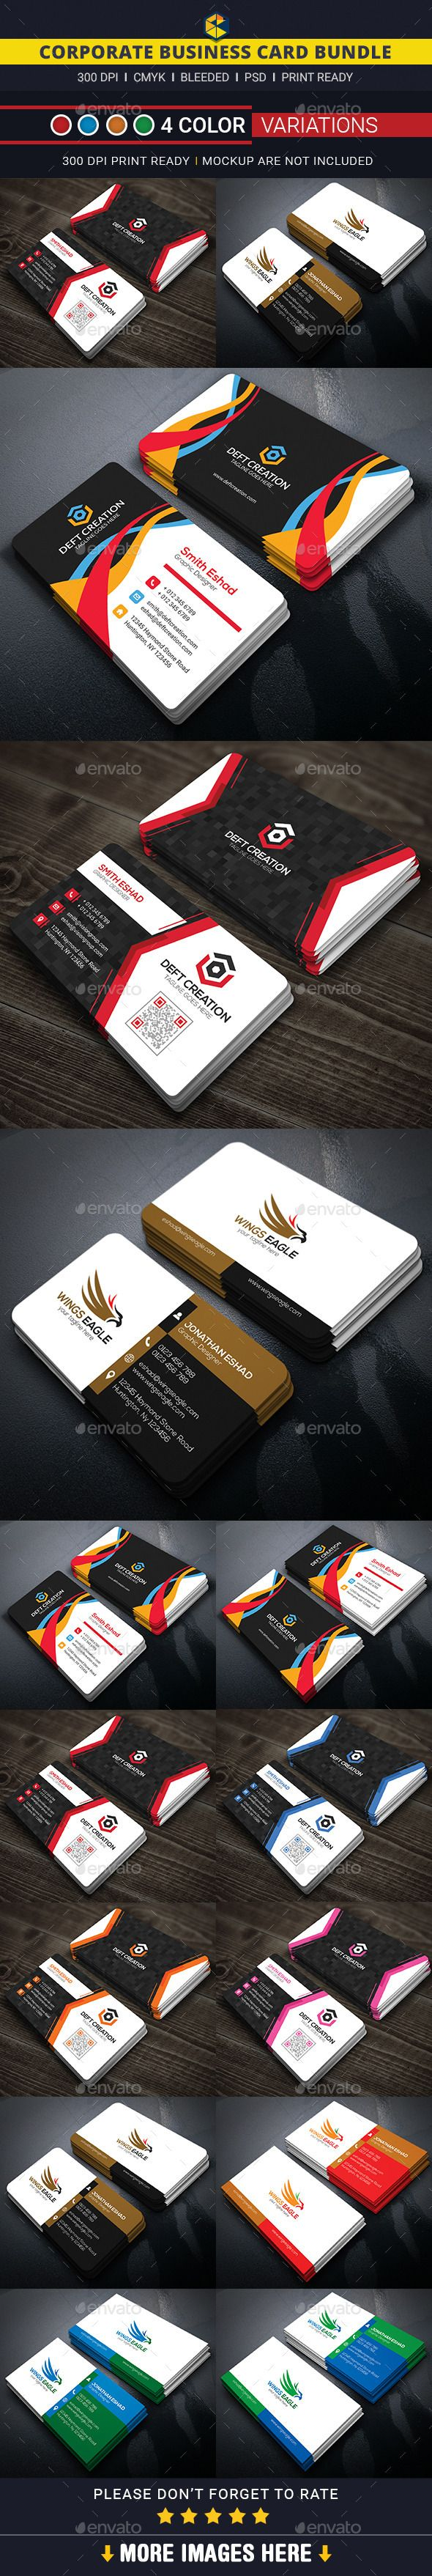 Corporate Business Card Bundle Business Cards Print Templates